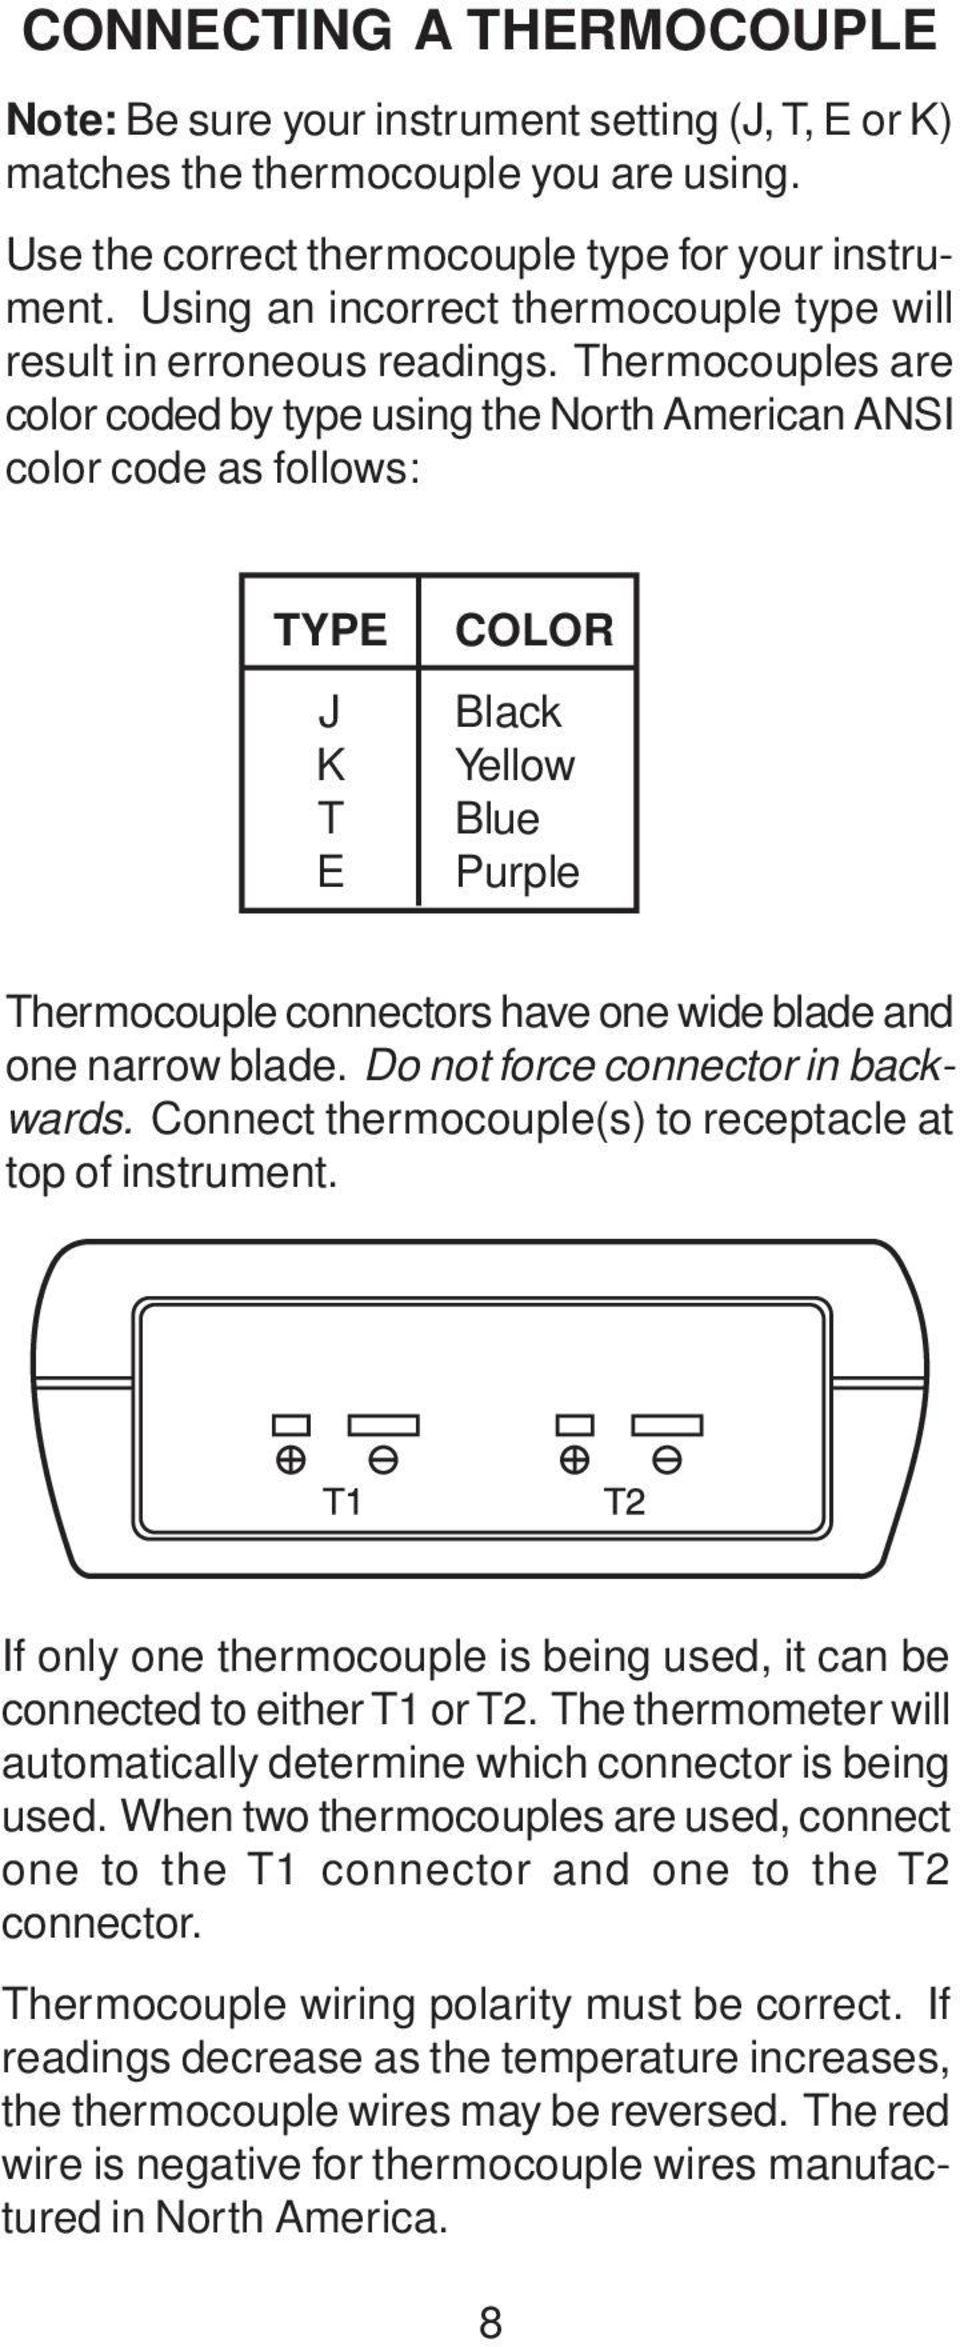 medium resolution of thermocouples are color coded by type using the north american ansi color code as follows